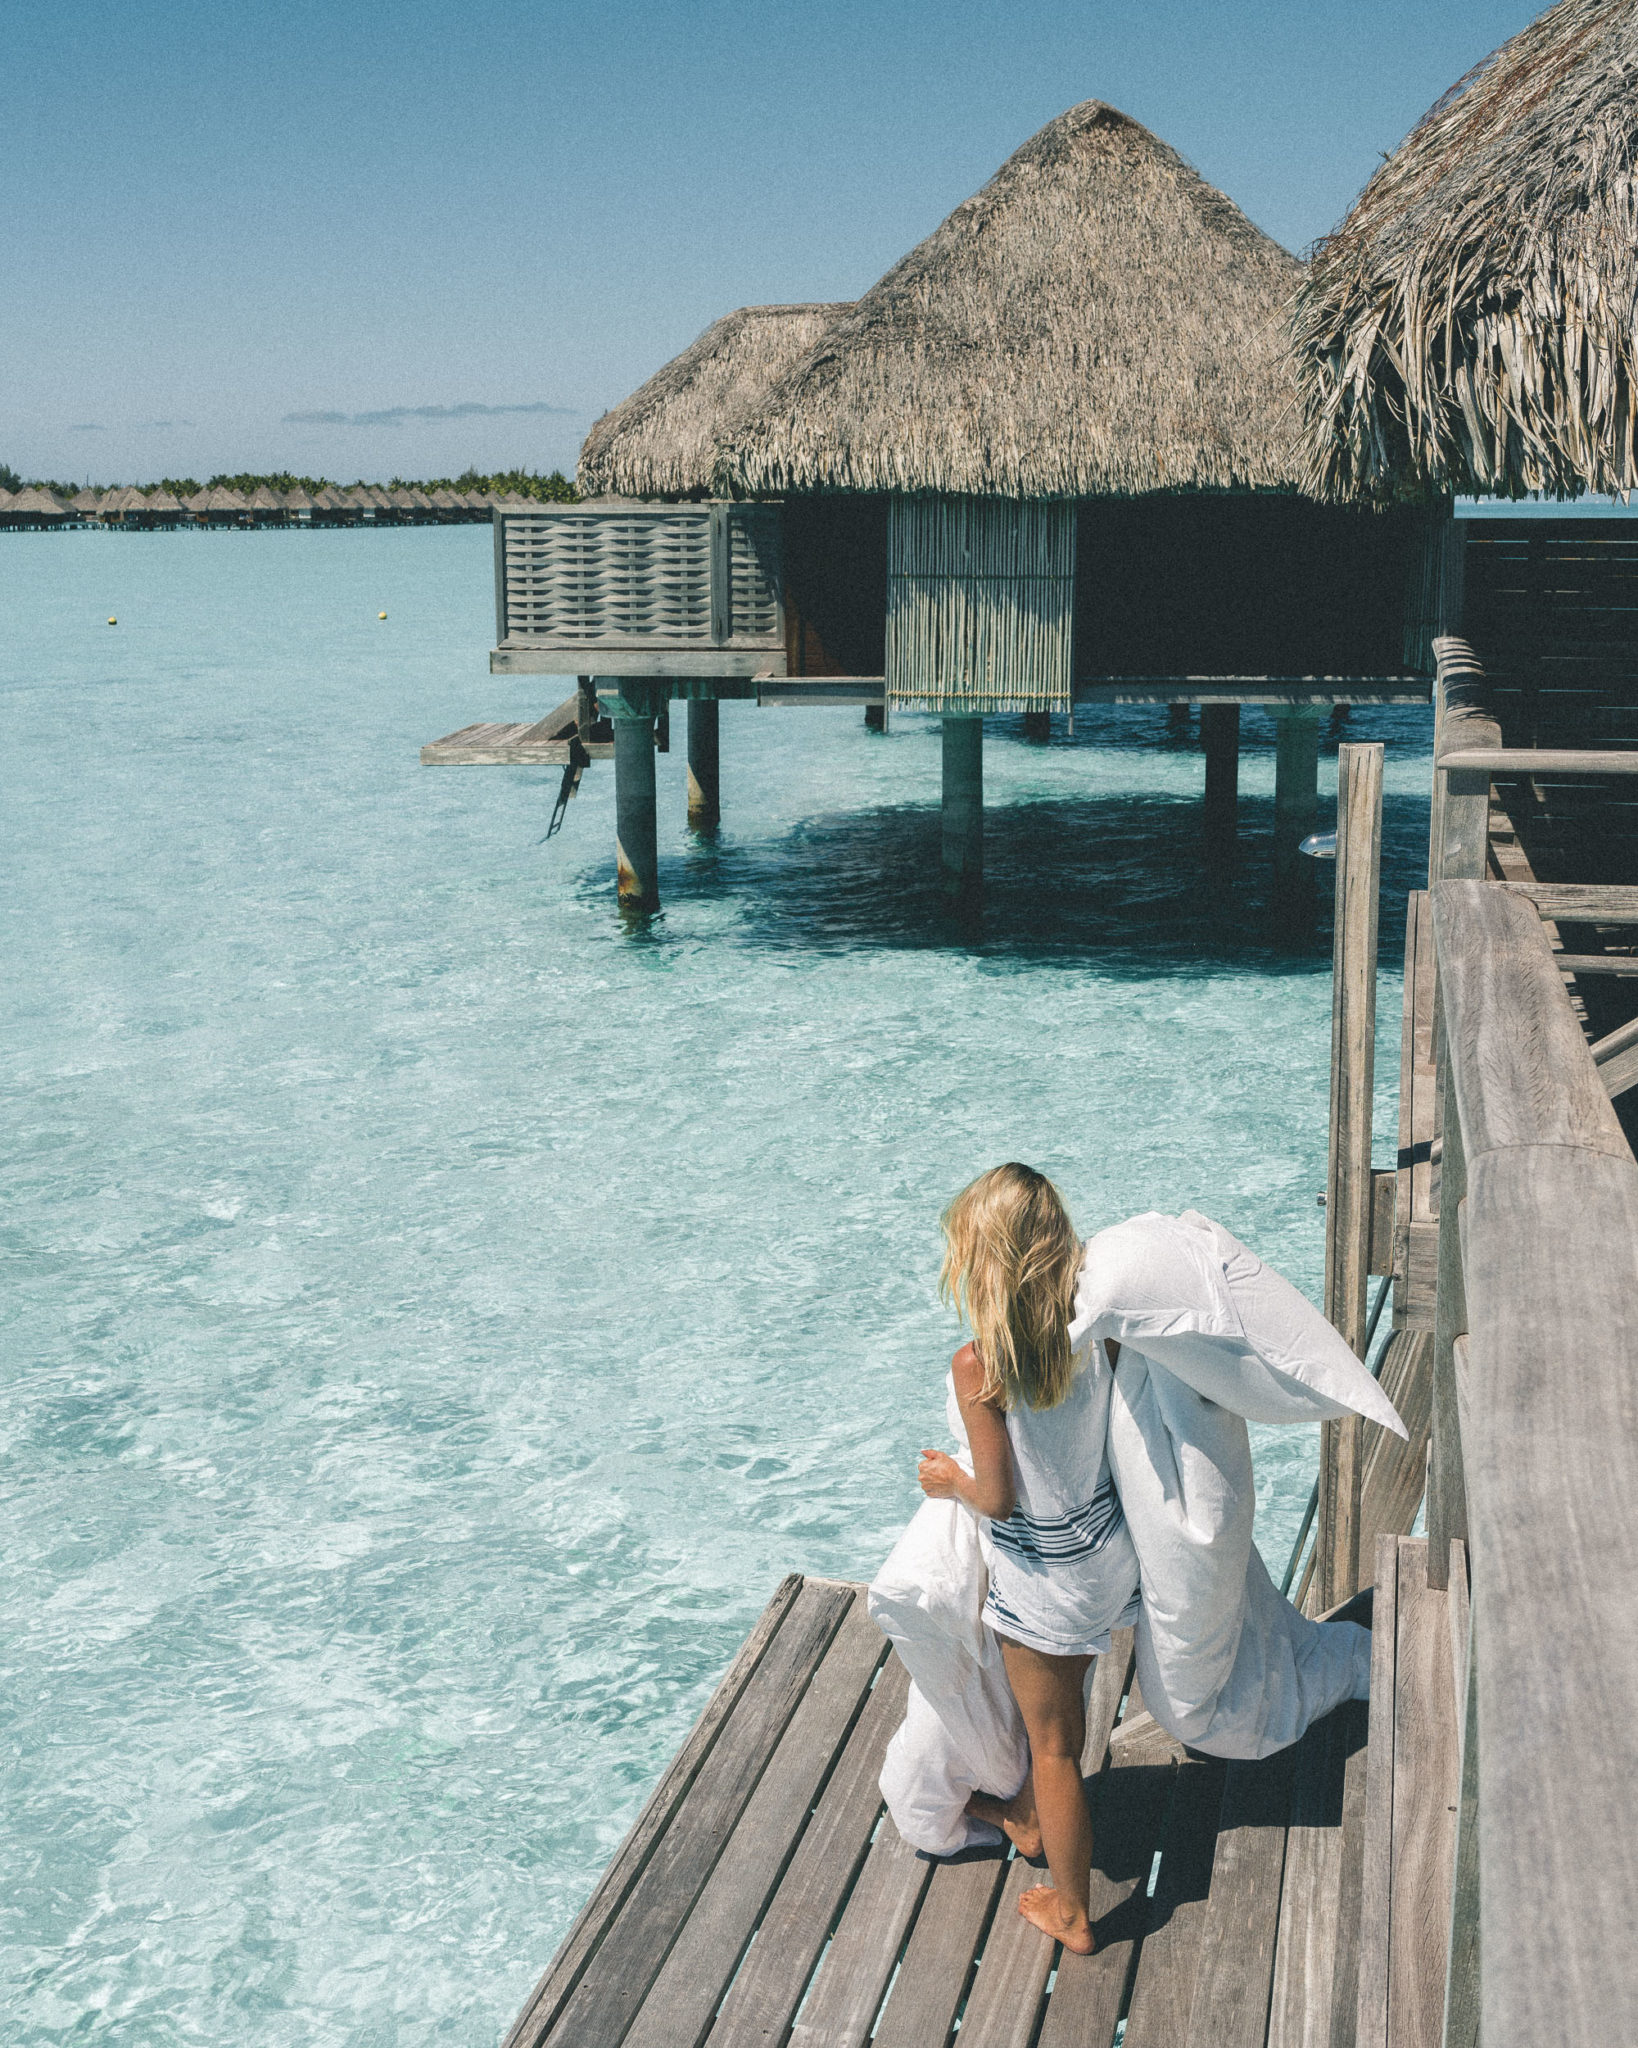 Overwater bungalow at Four Seasons Resort Bora Bora for our honeymoon